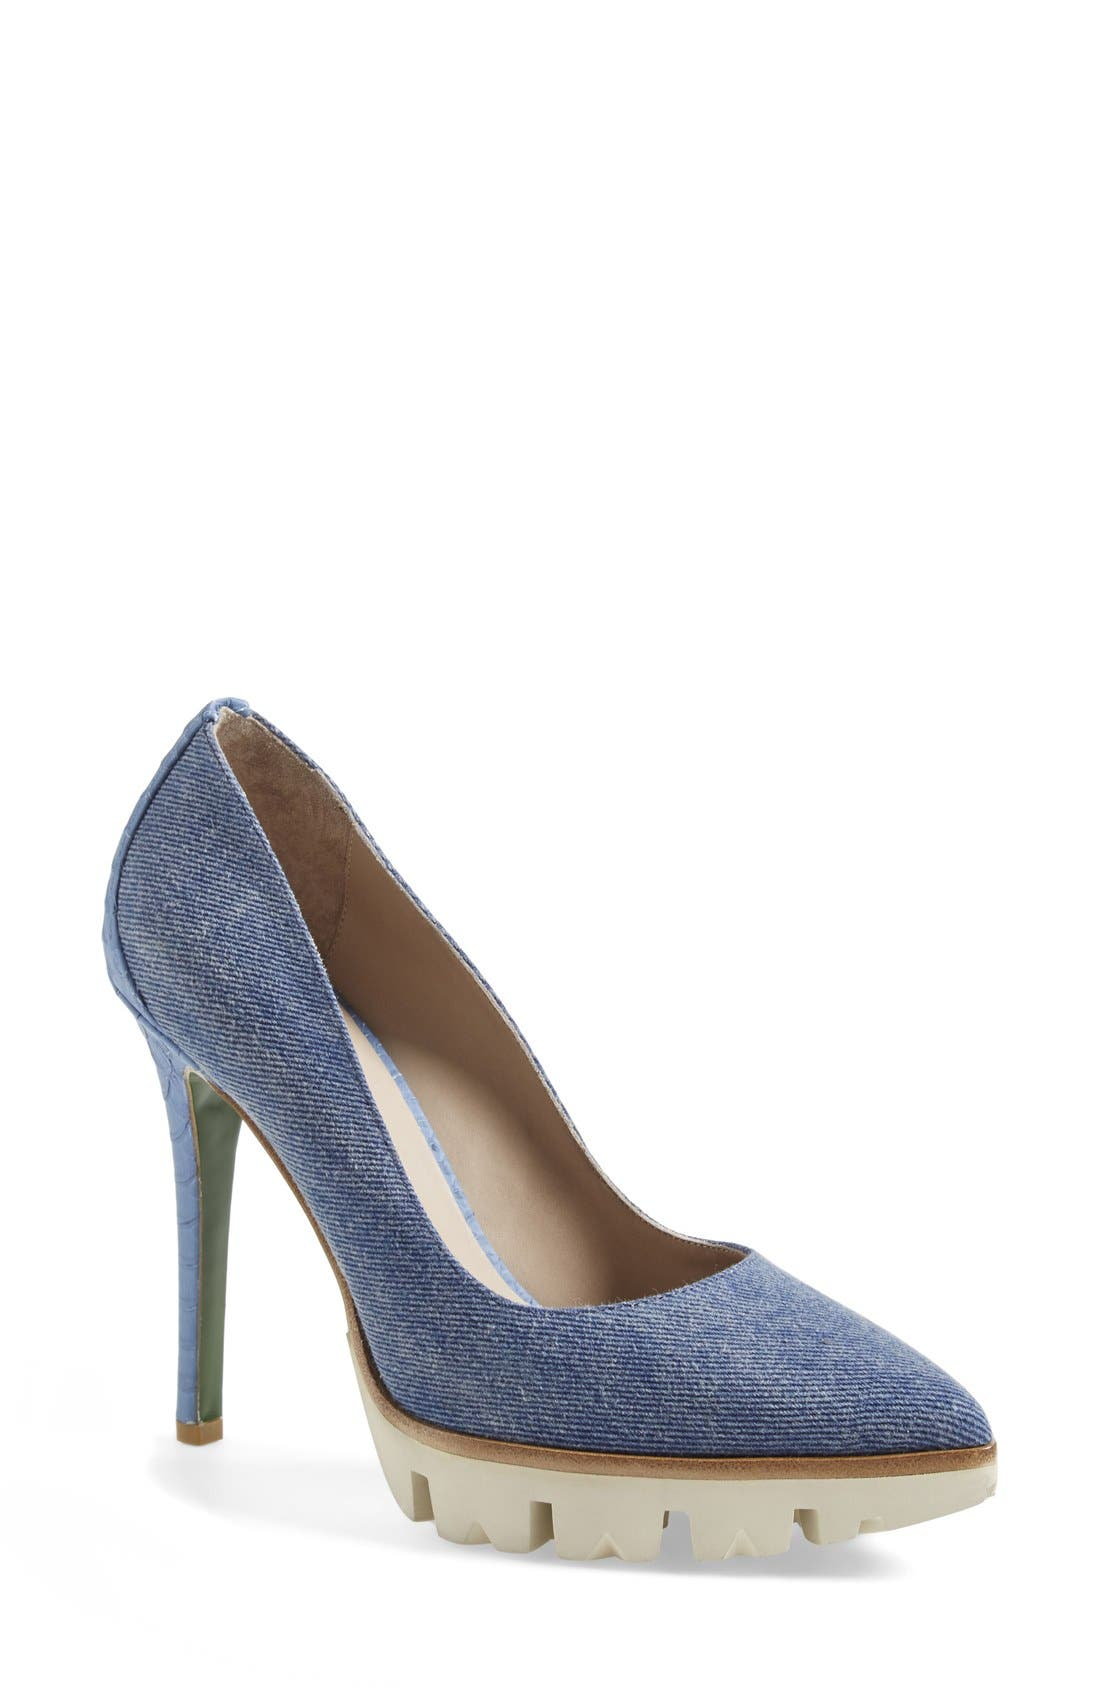 Alternate Image 1 Selected - Donald & Lisa Signature 'Endivasp' Pump (Women)